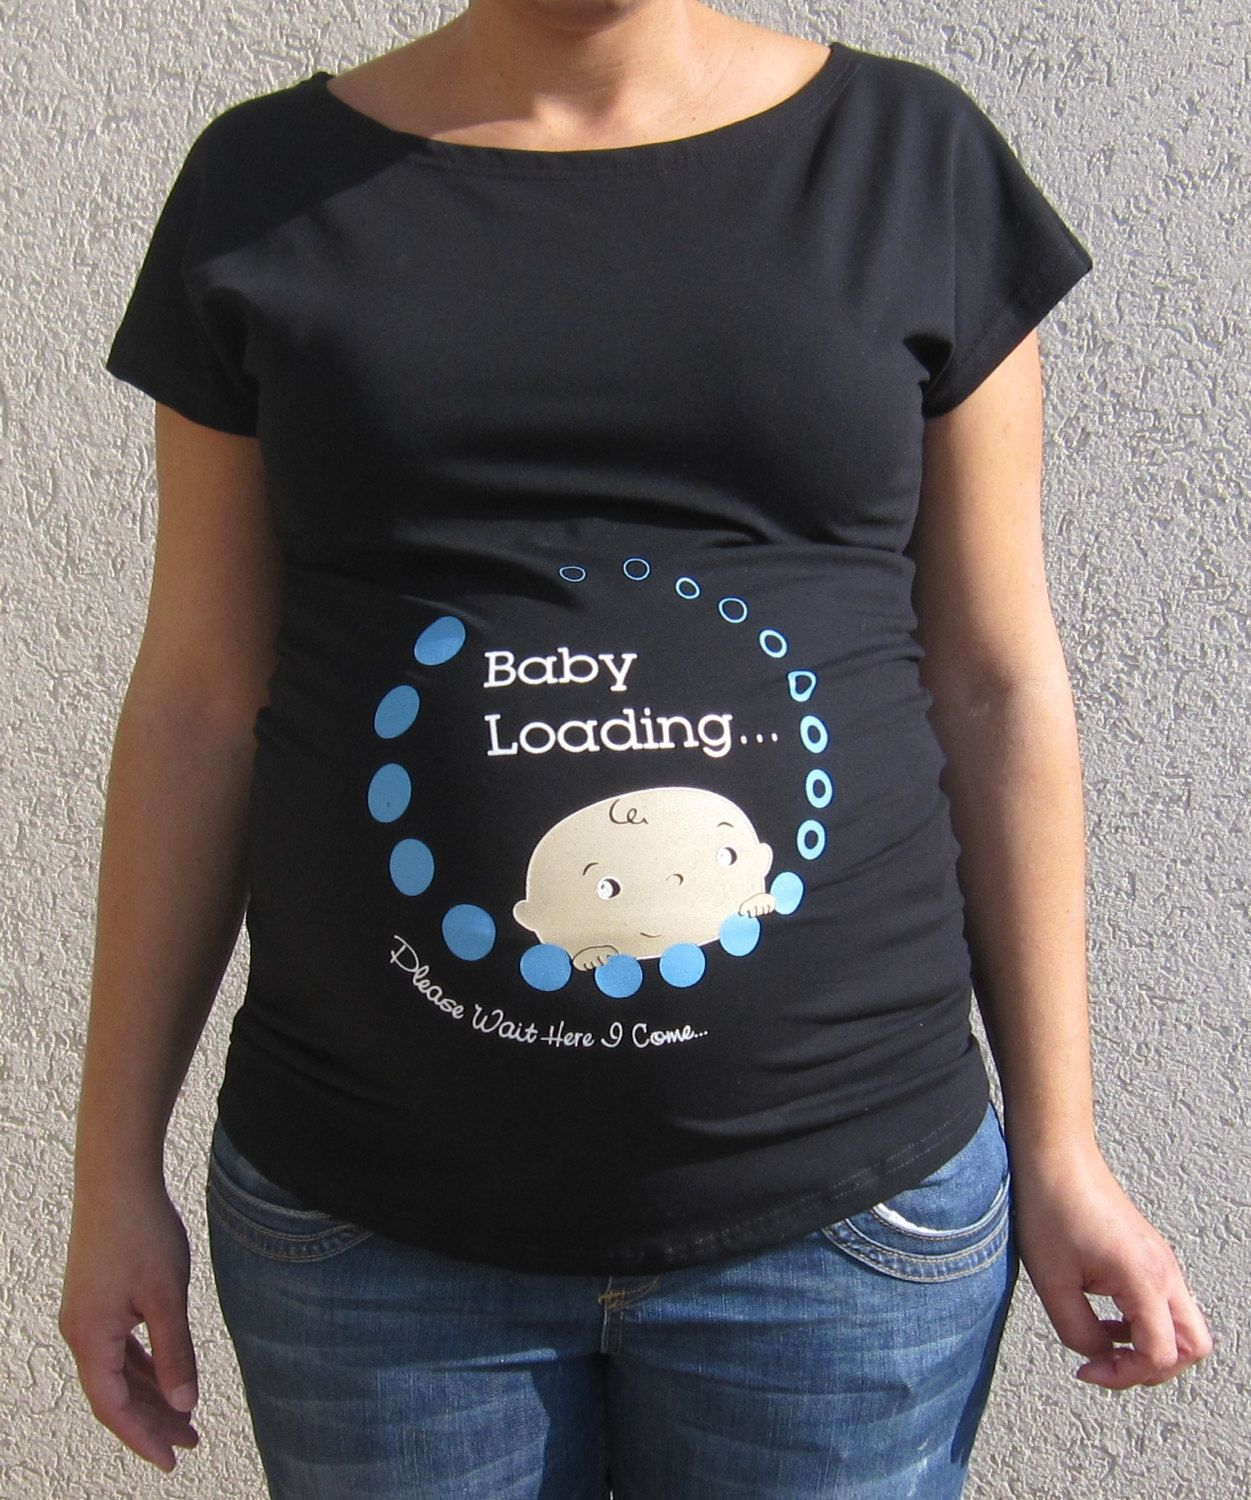 Funny 'Baby Loading' Maternity Shirts for Cool Moms | Funny ...